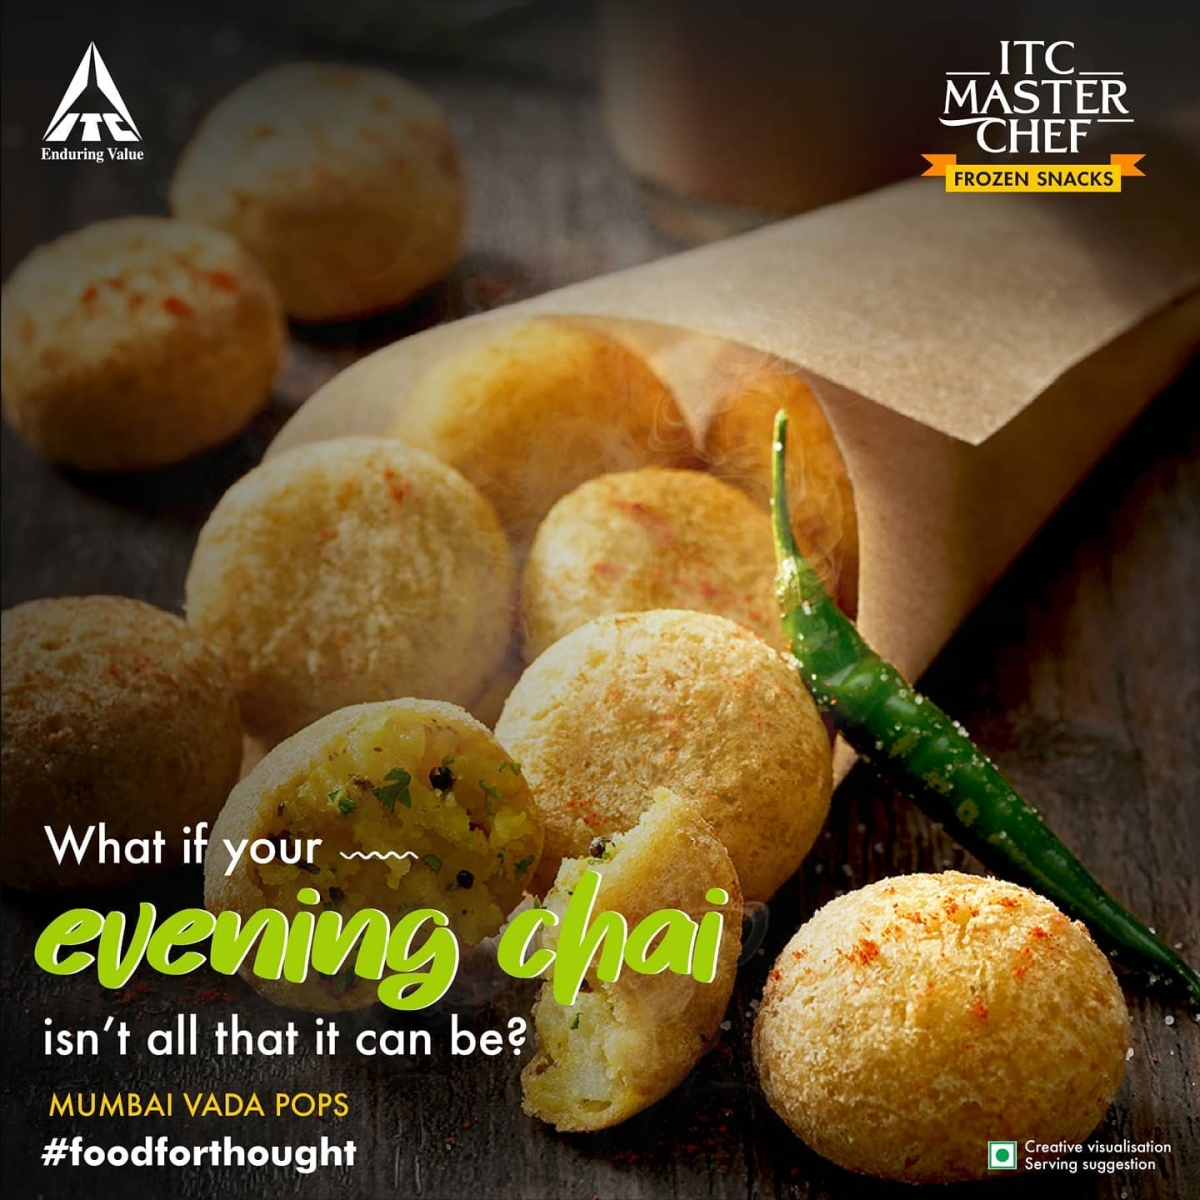 ITC Master Chef's ready to cook Vada pops